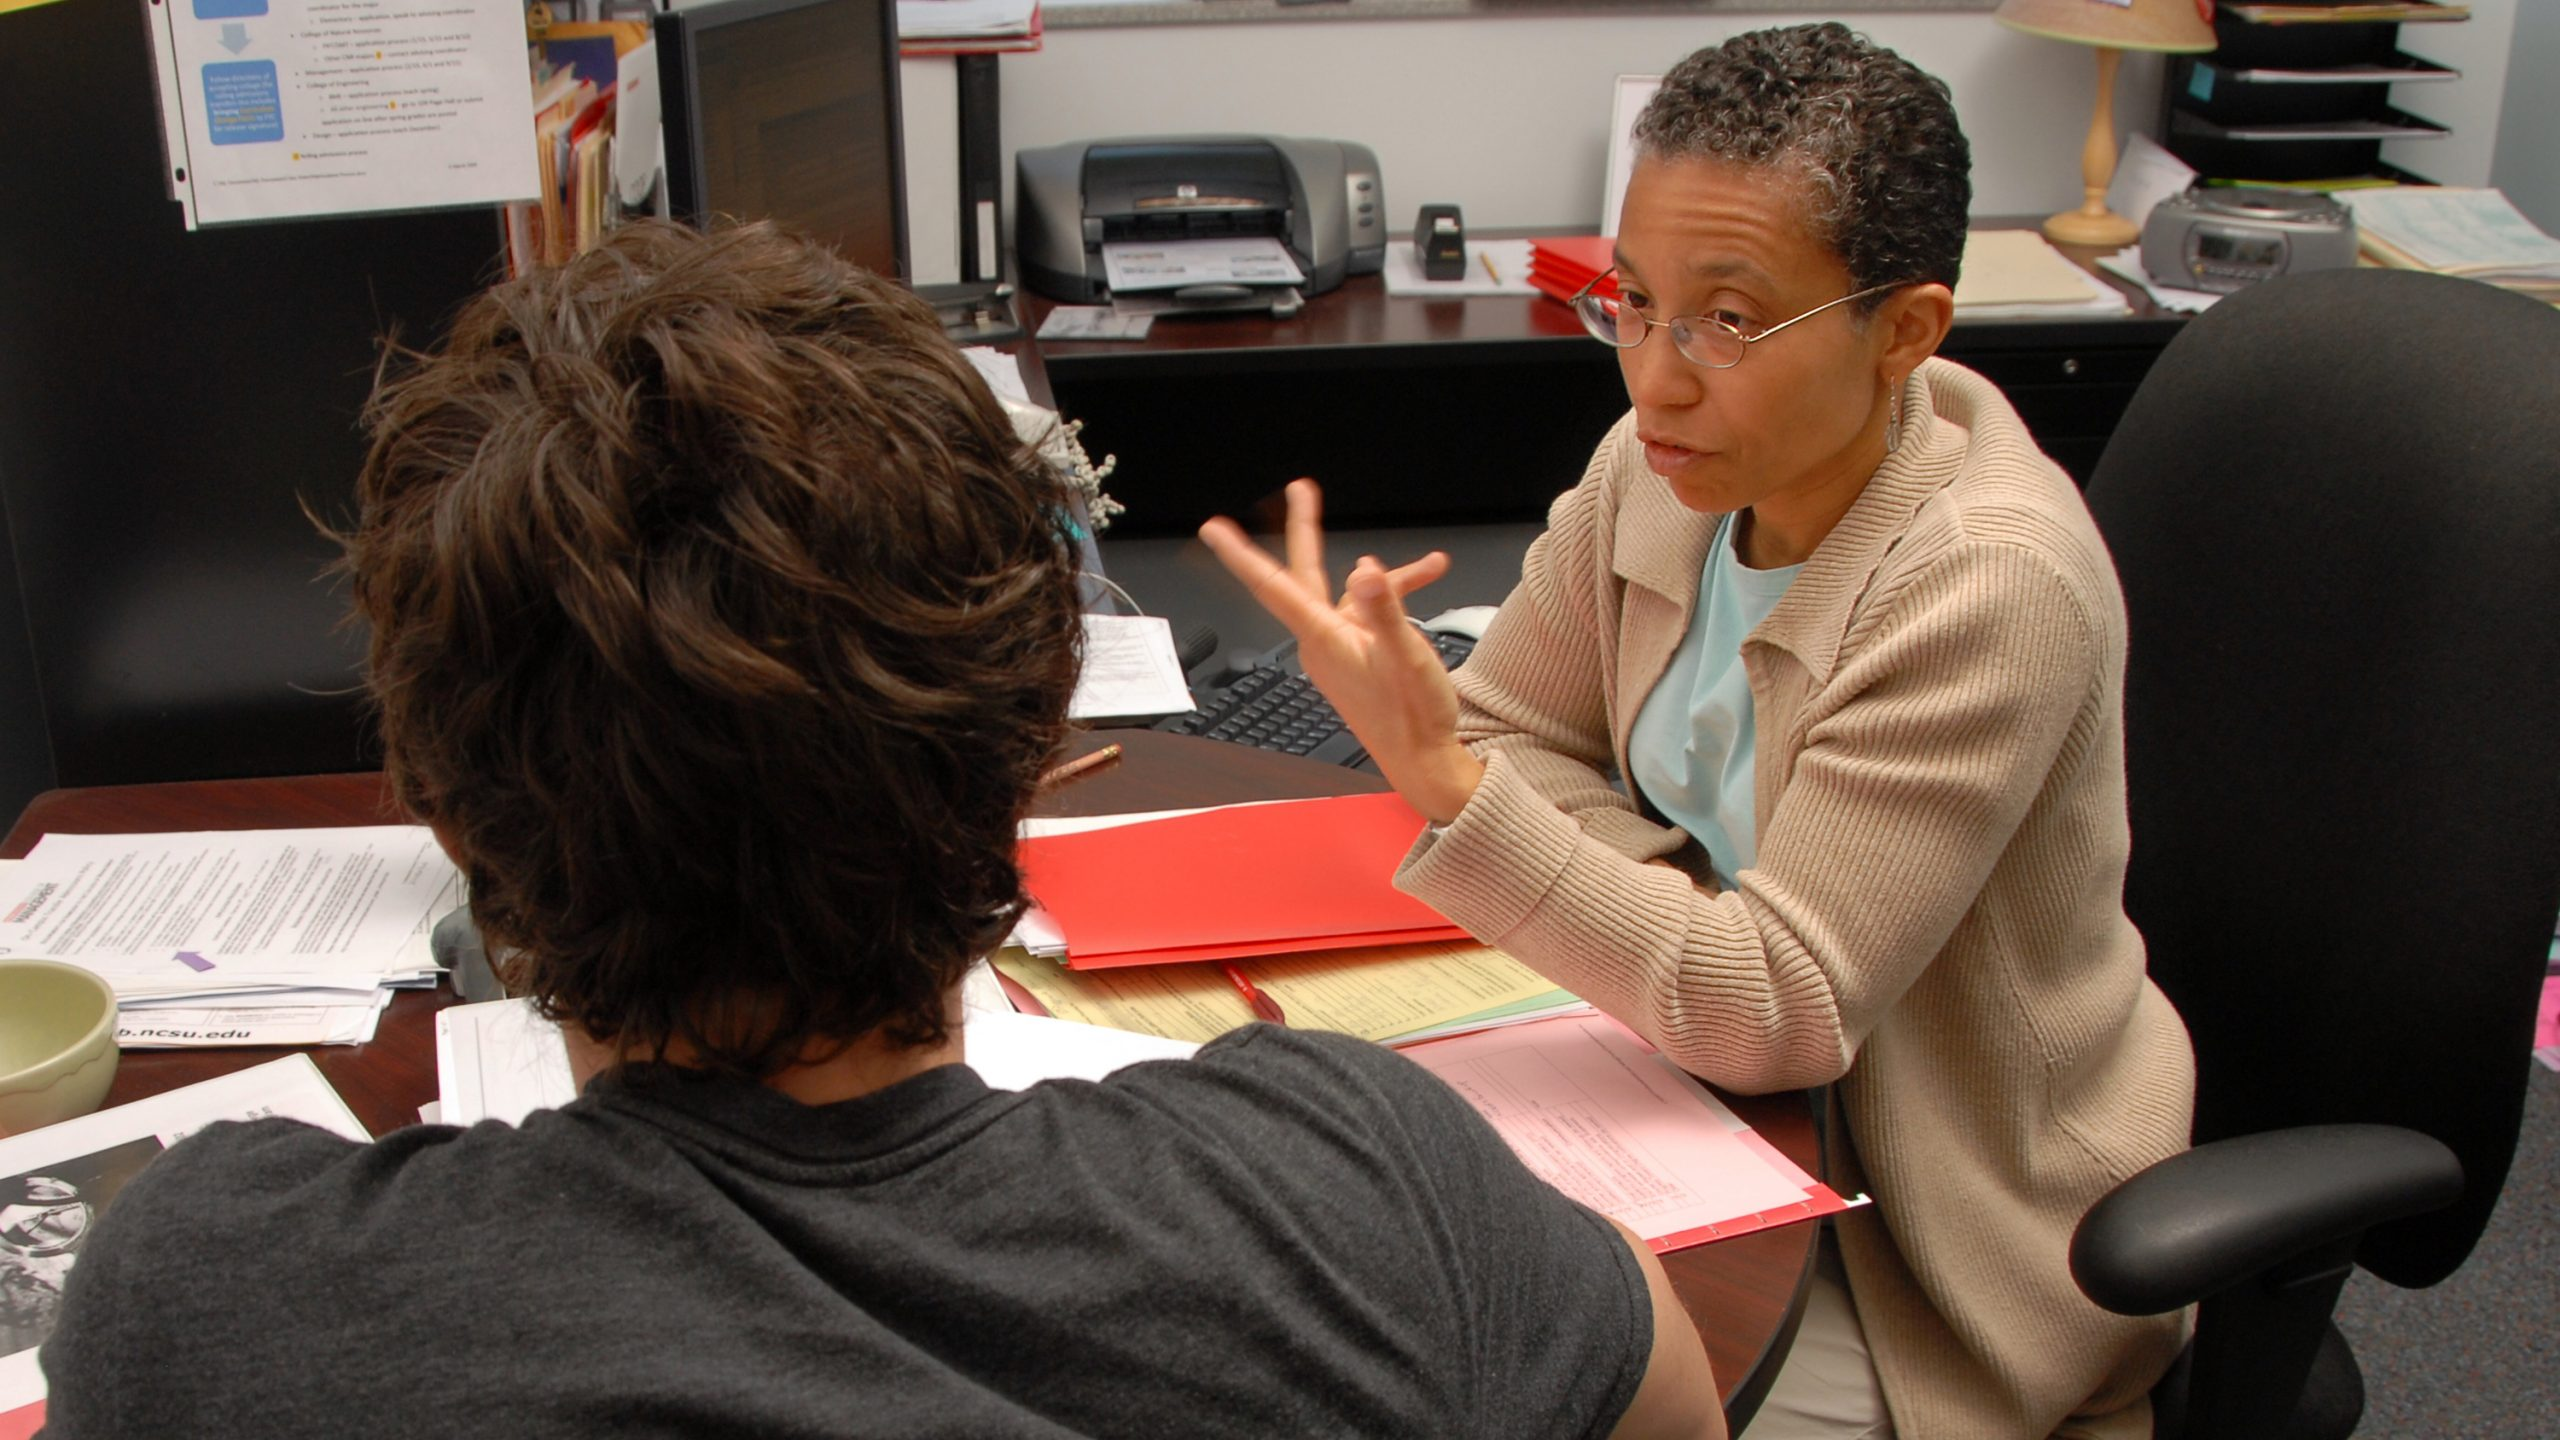 Academic advisor meeting with a student